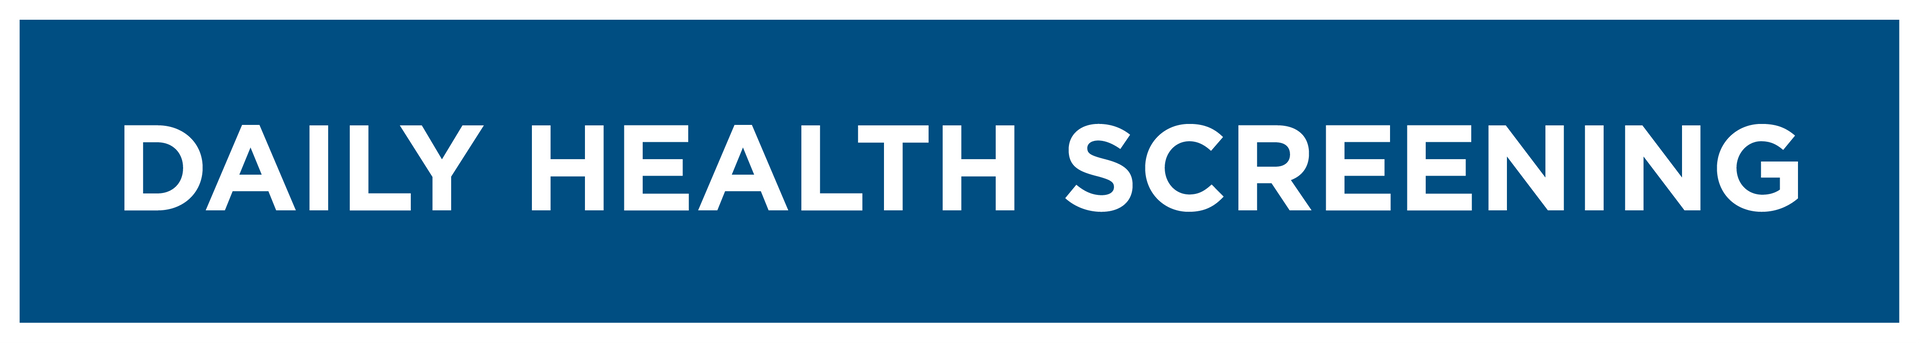 Daily Health Screening button